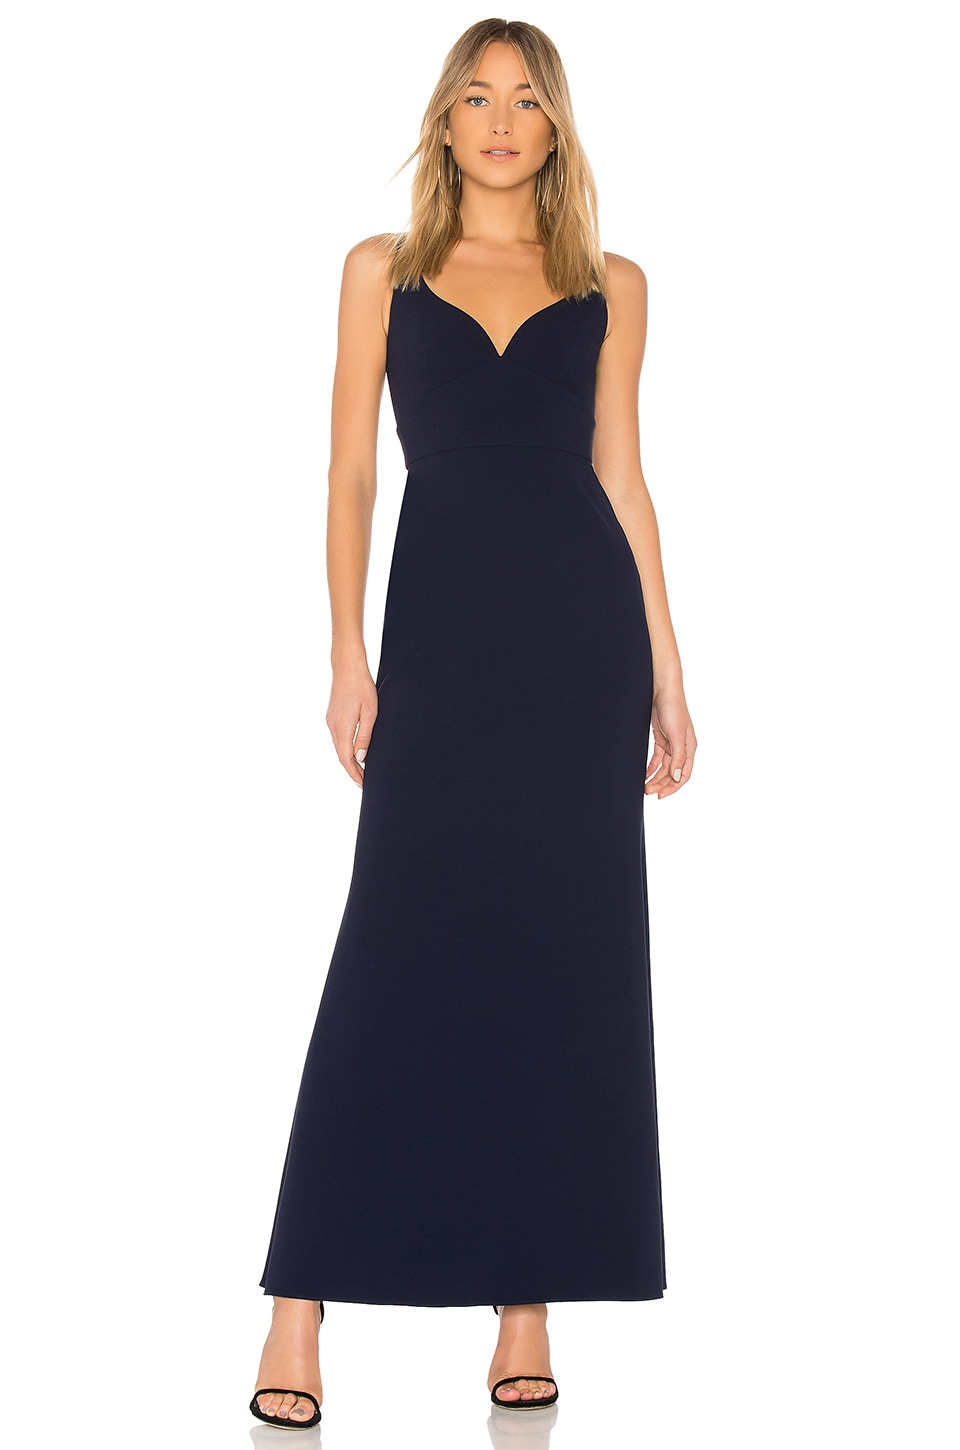 JILL JILL STUART Sweetheart Neck Gown in Midnight Blue